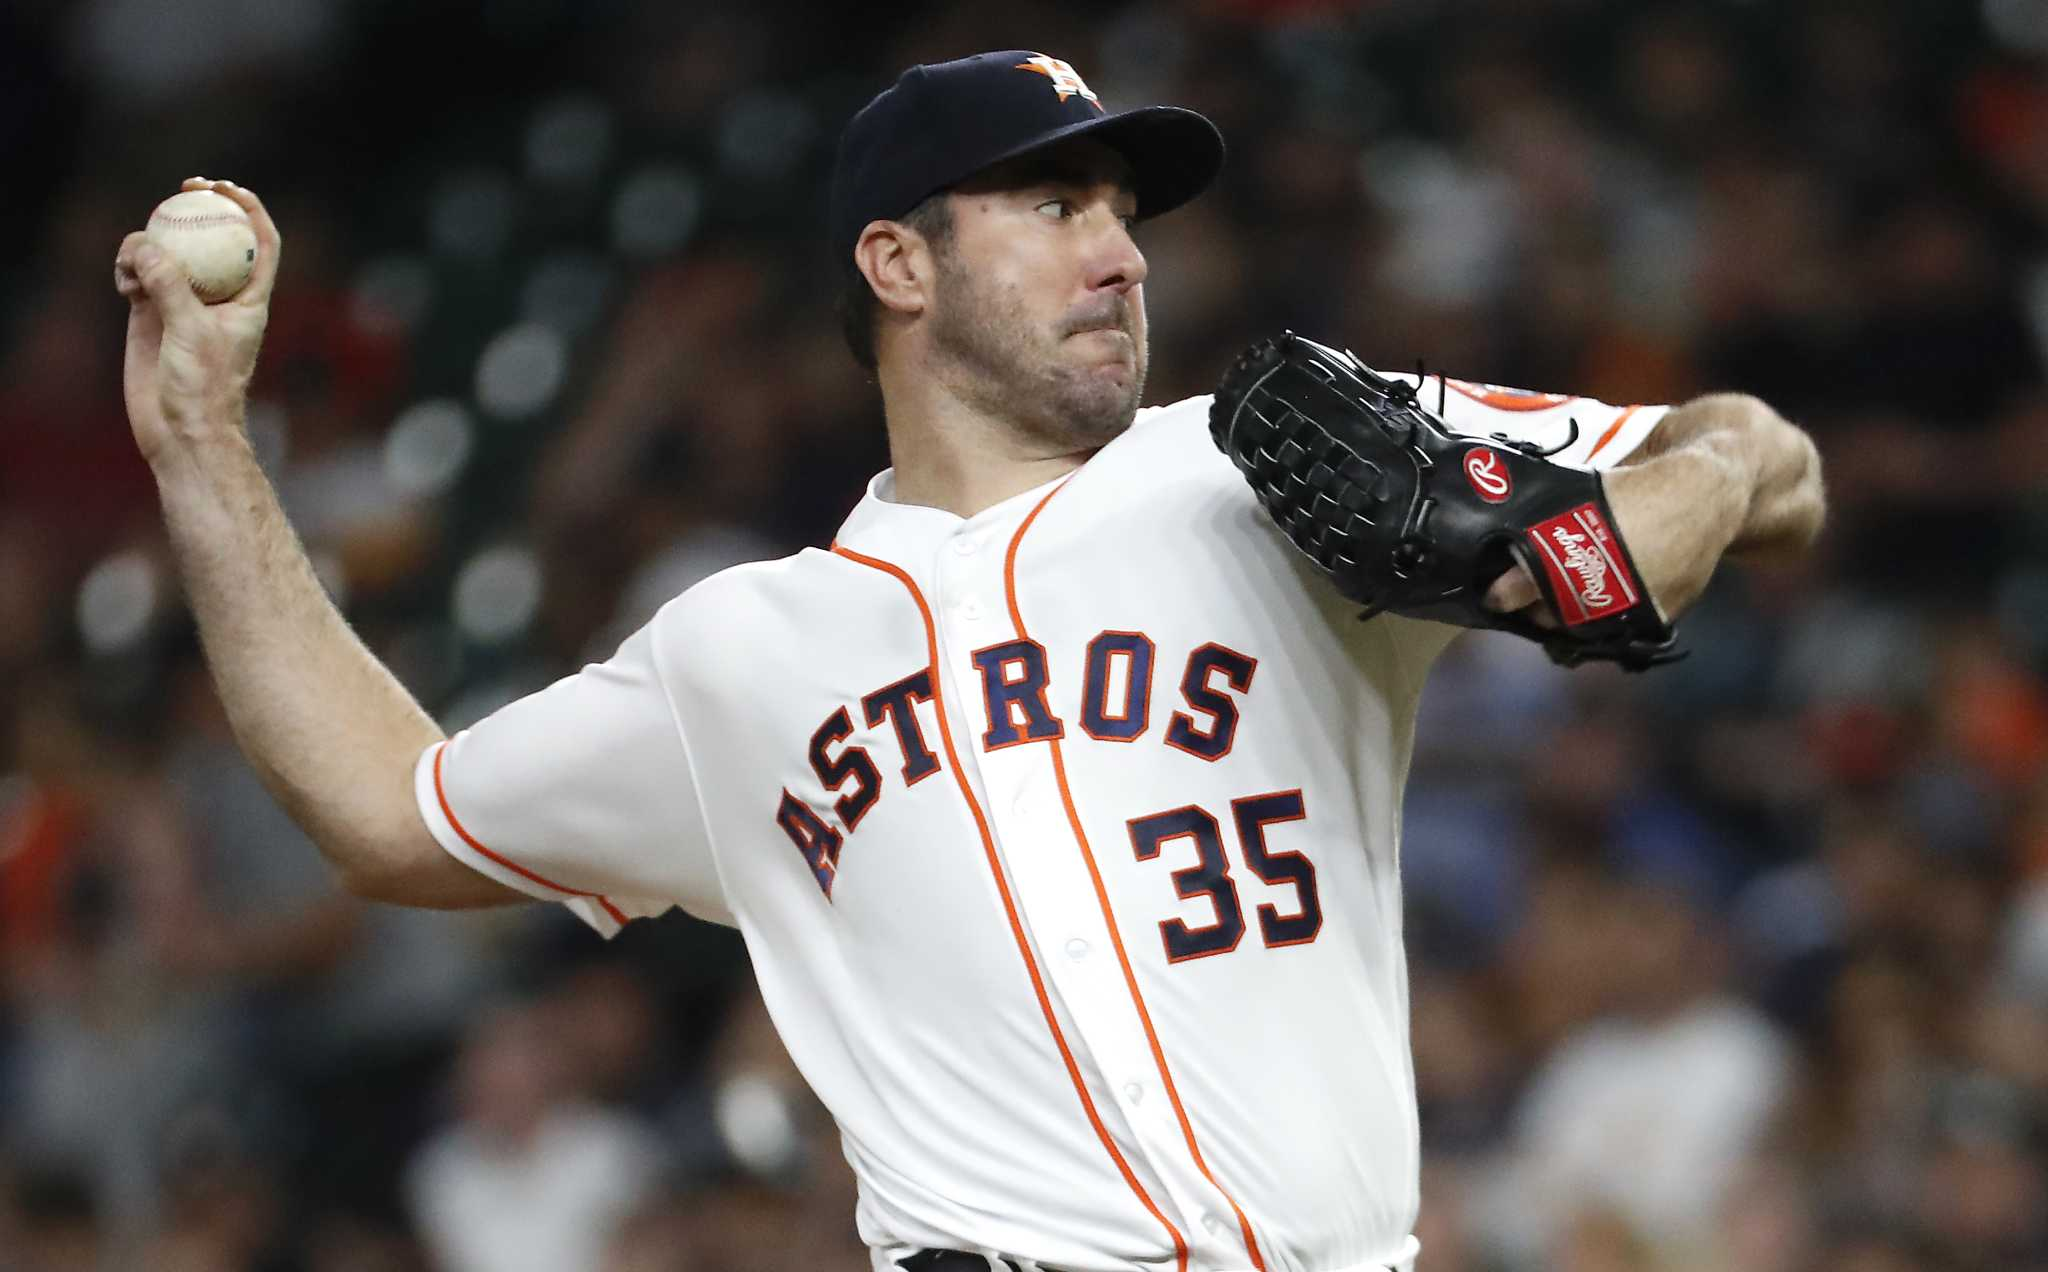 Justin Verlander dominates as Astros roll past White Sox